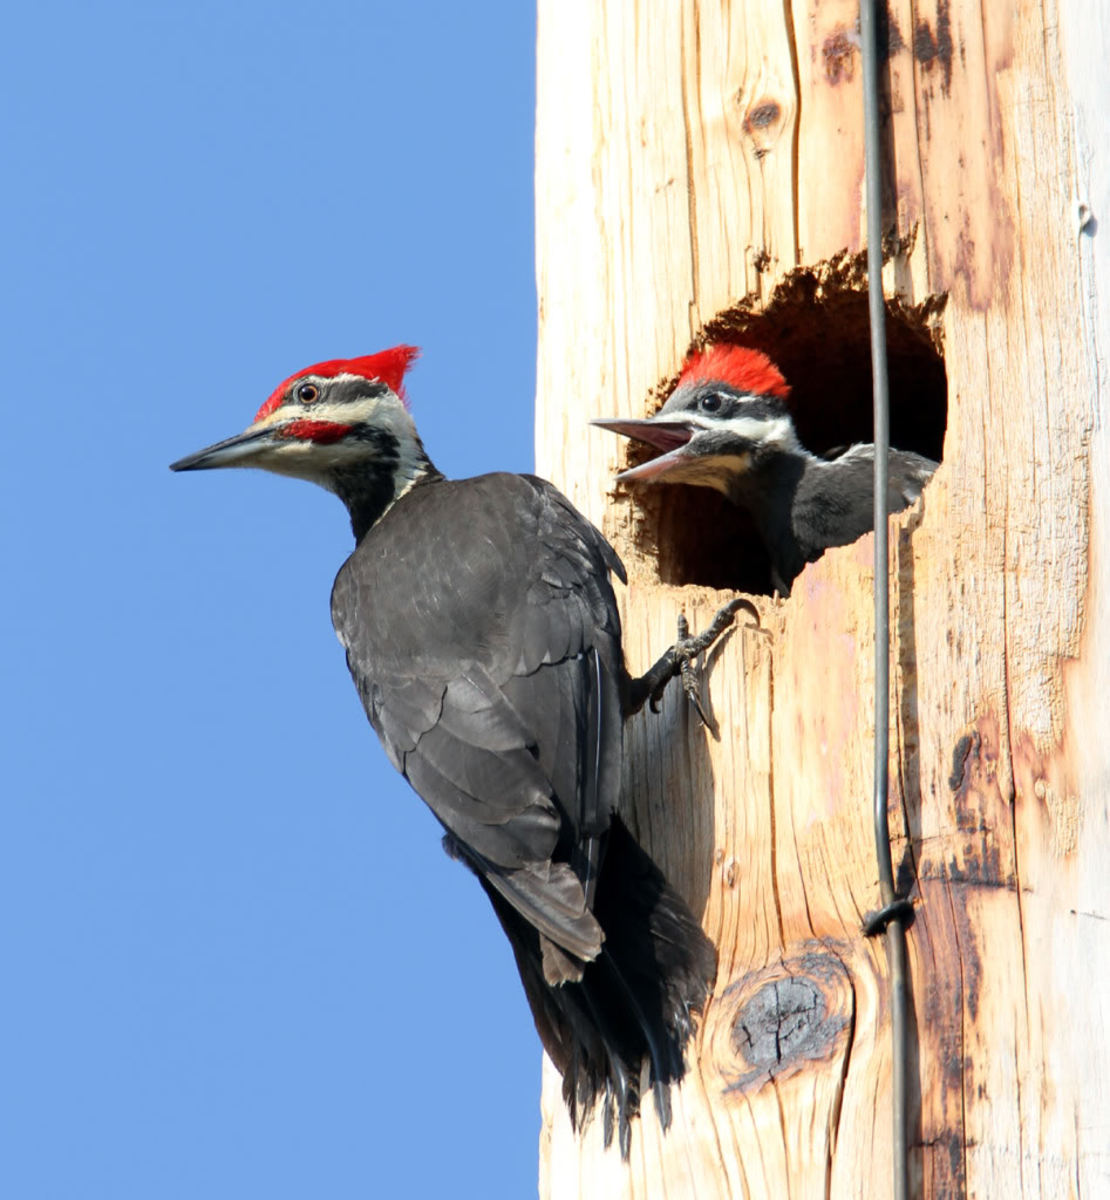 The Pileated Woodpecker, a special problem for utility poles.